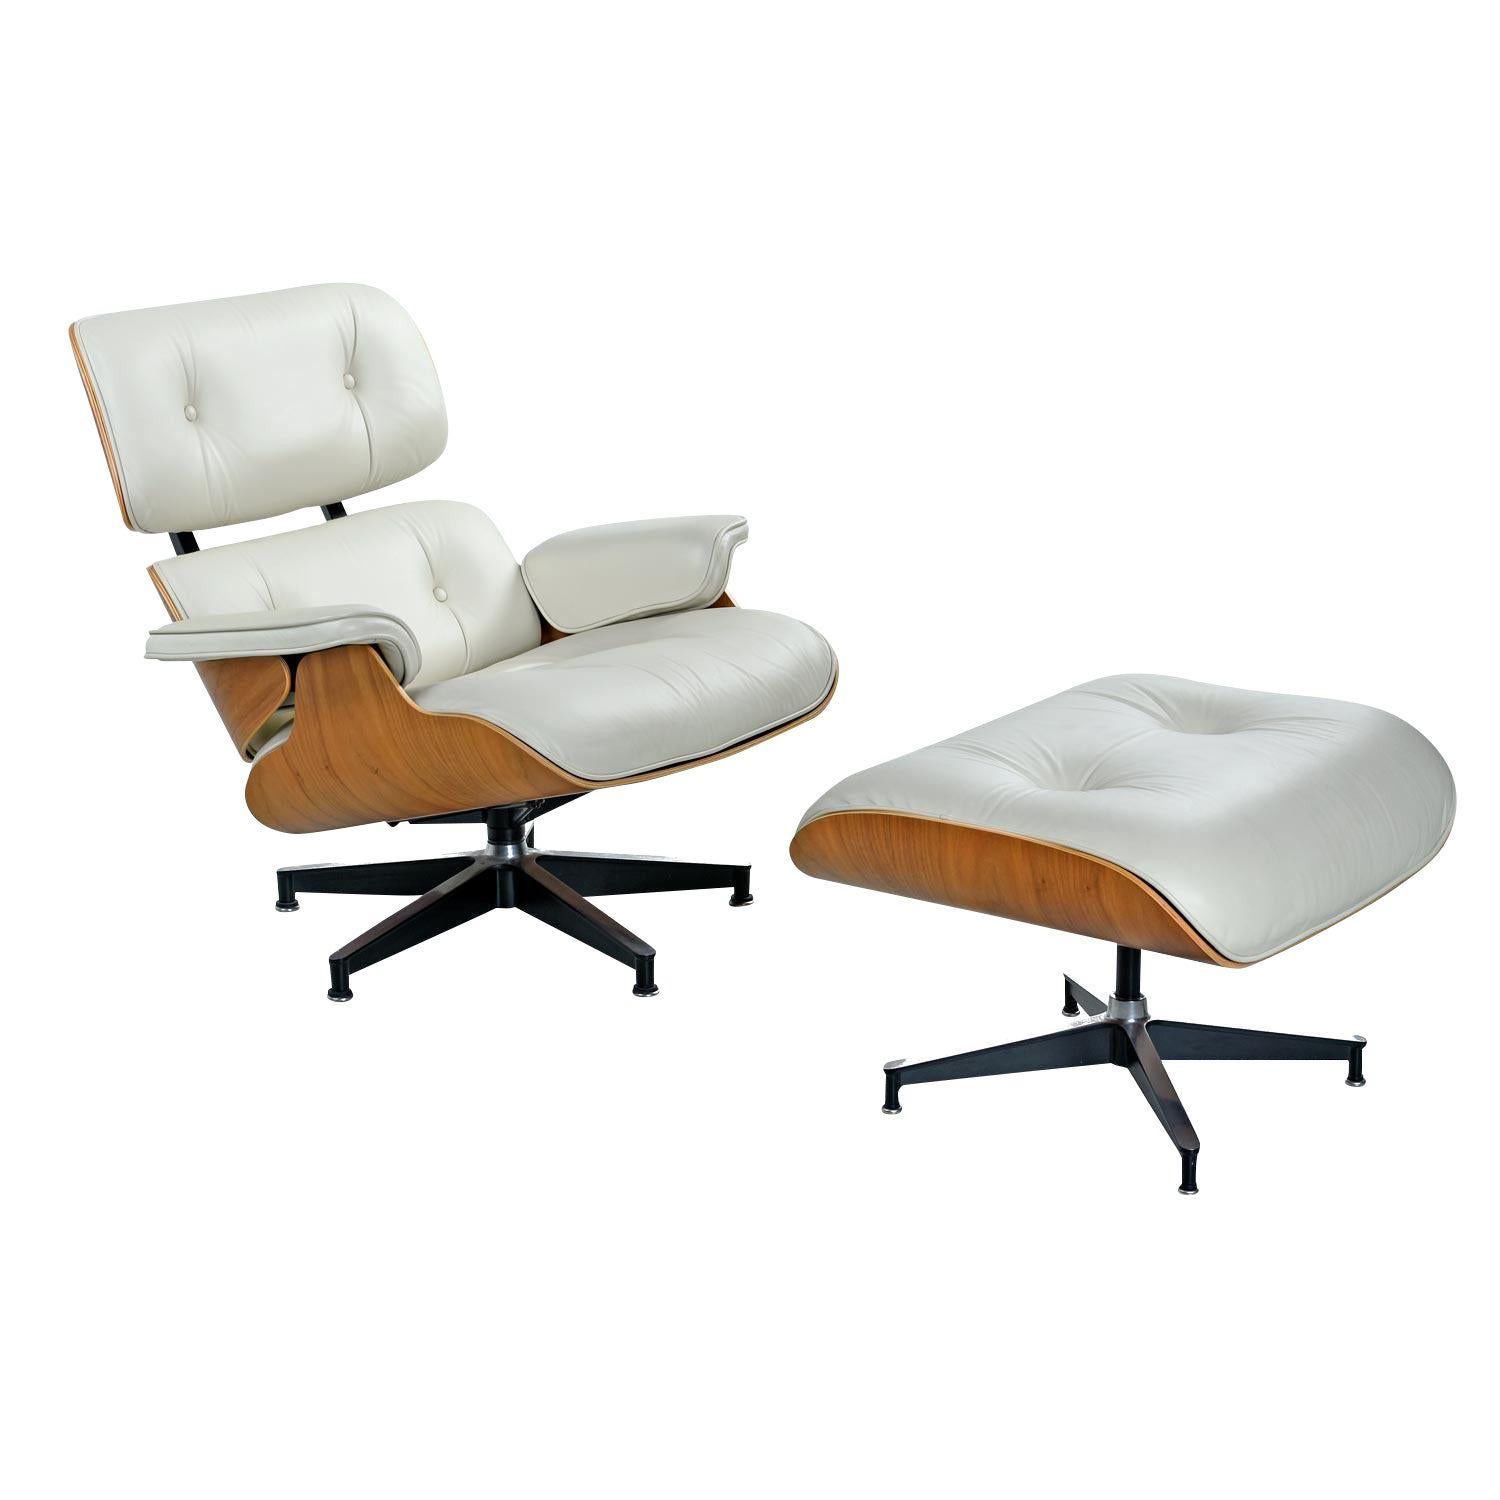 Walnut Eames Lounge Chair And Ottoman By Herman Miller In